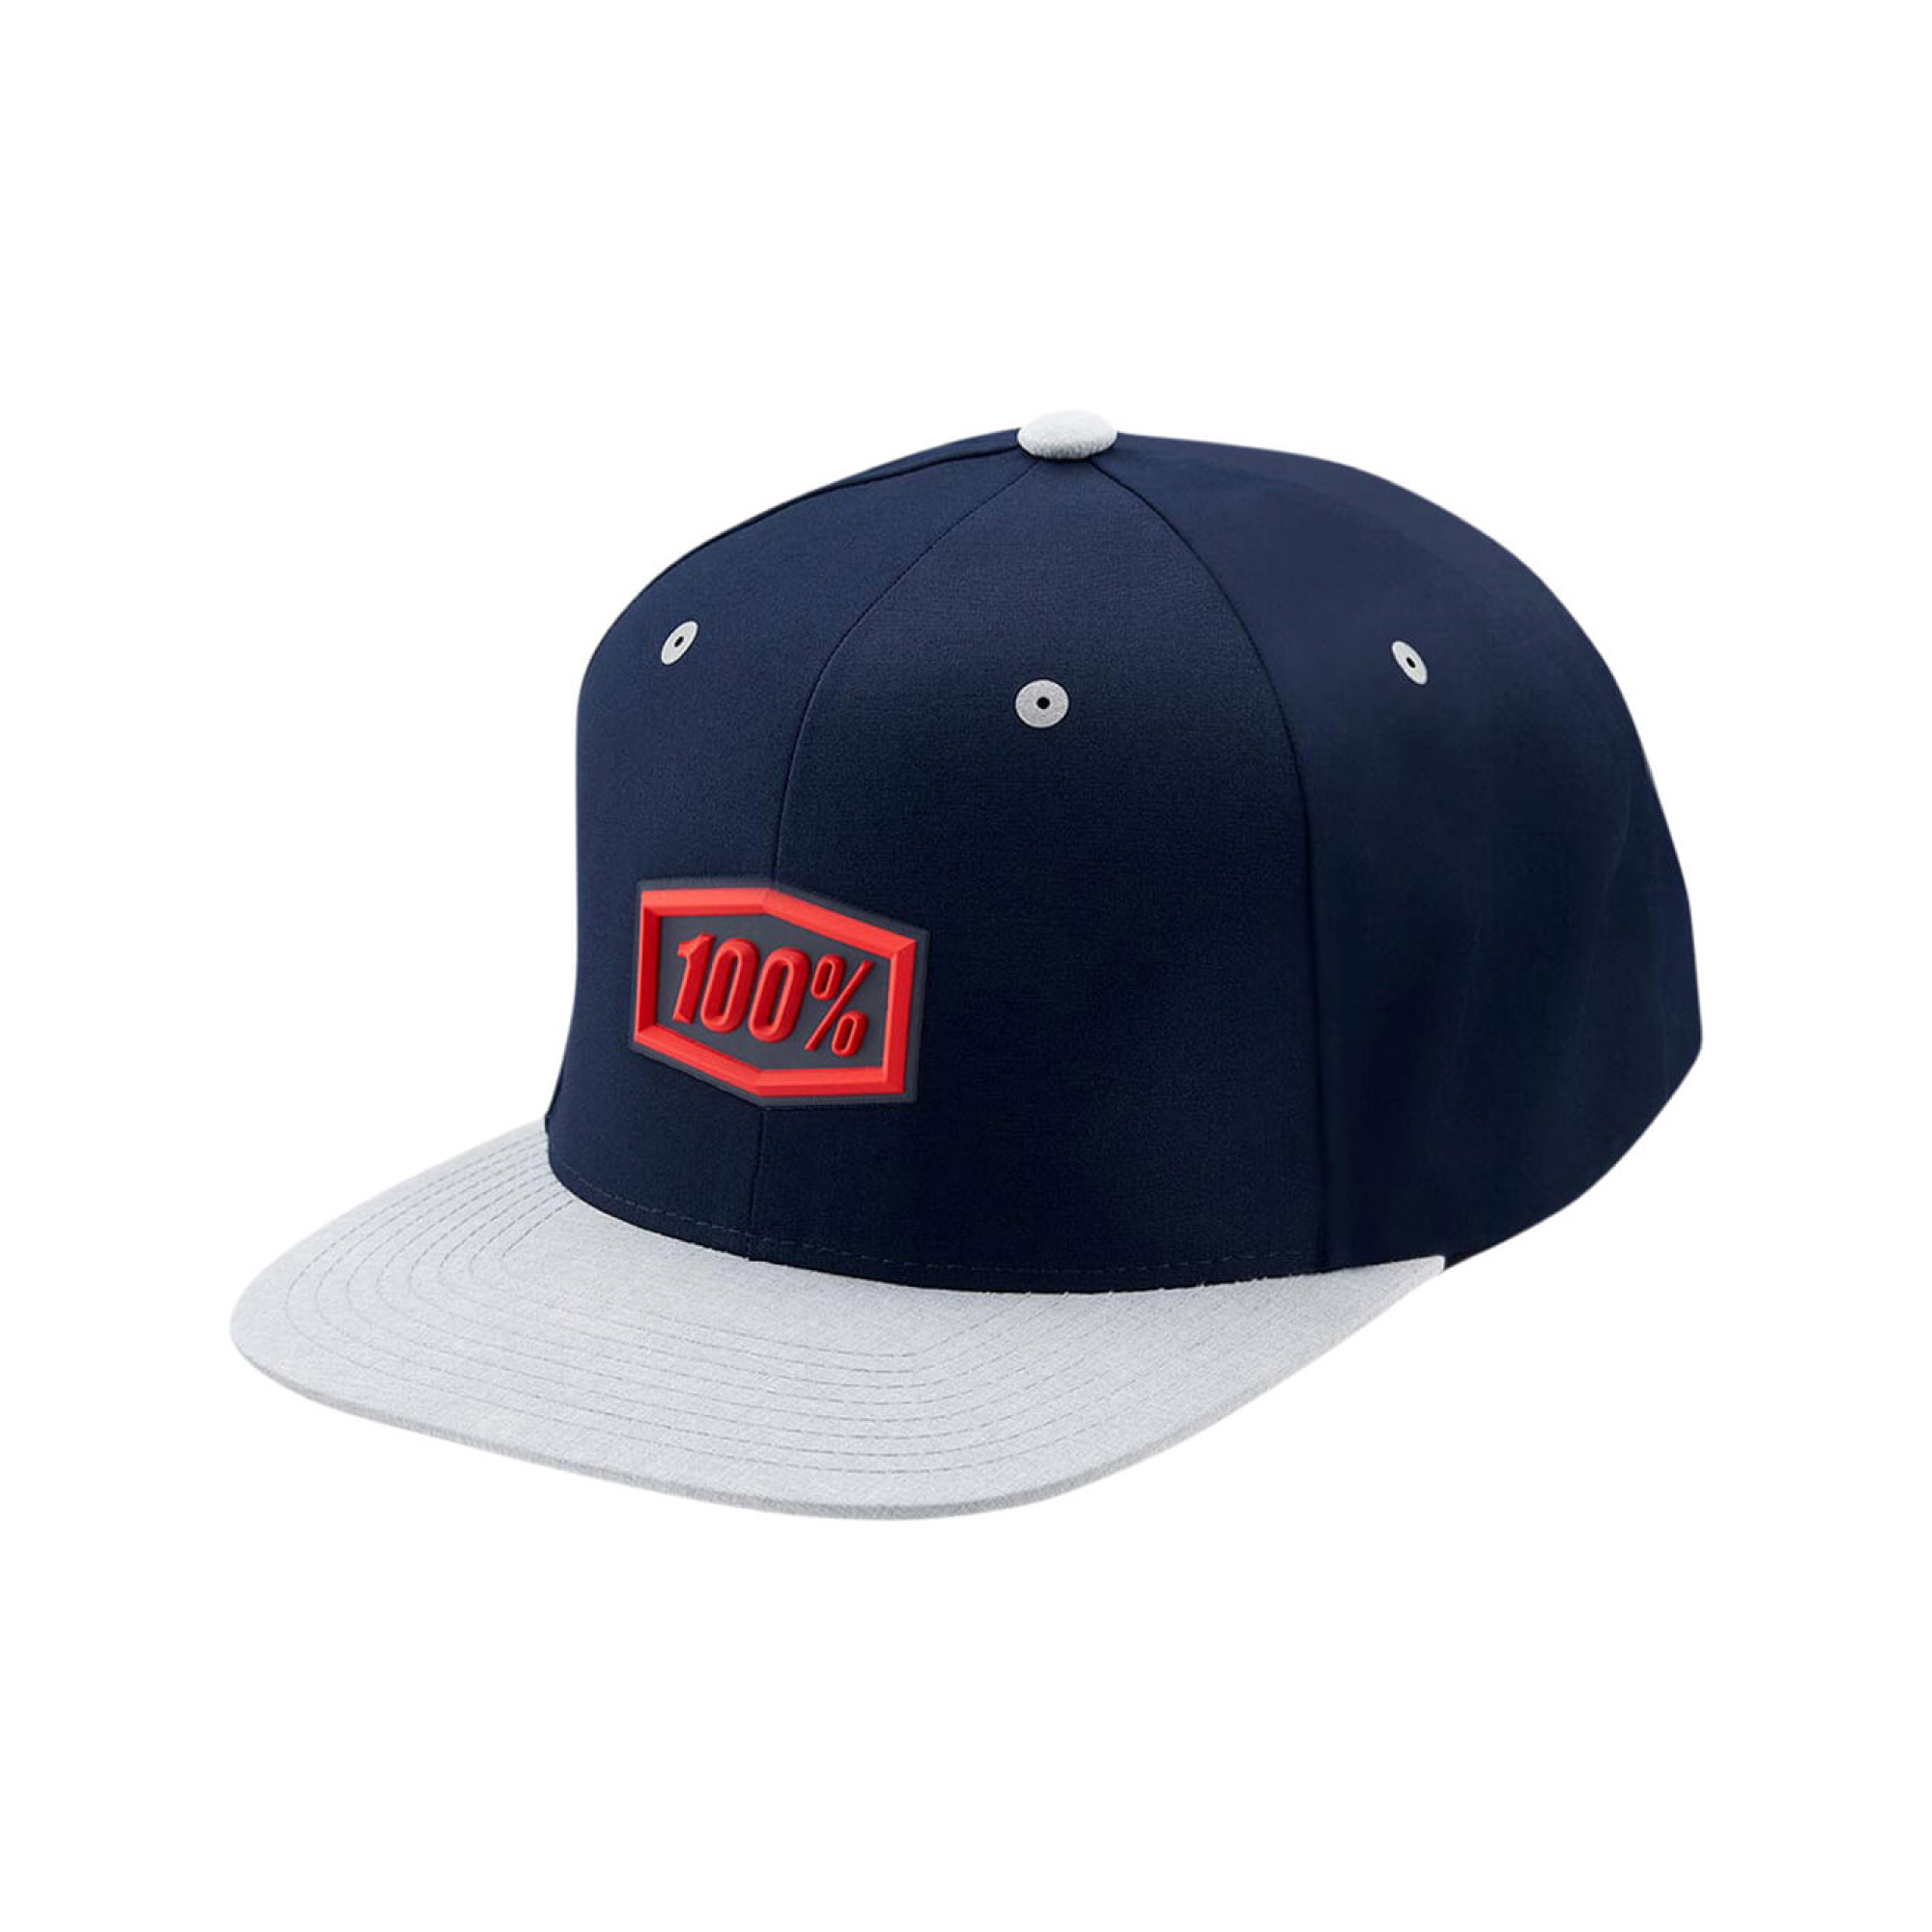 Enterprise Snapback Hat Navy-1